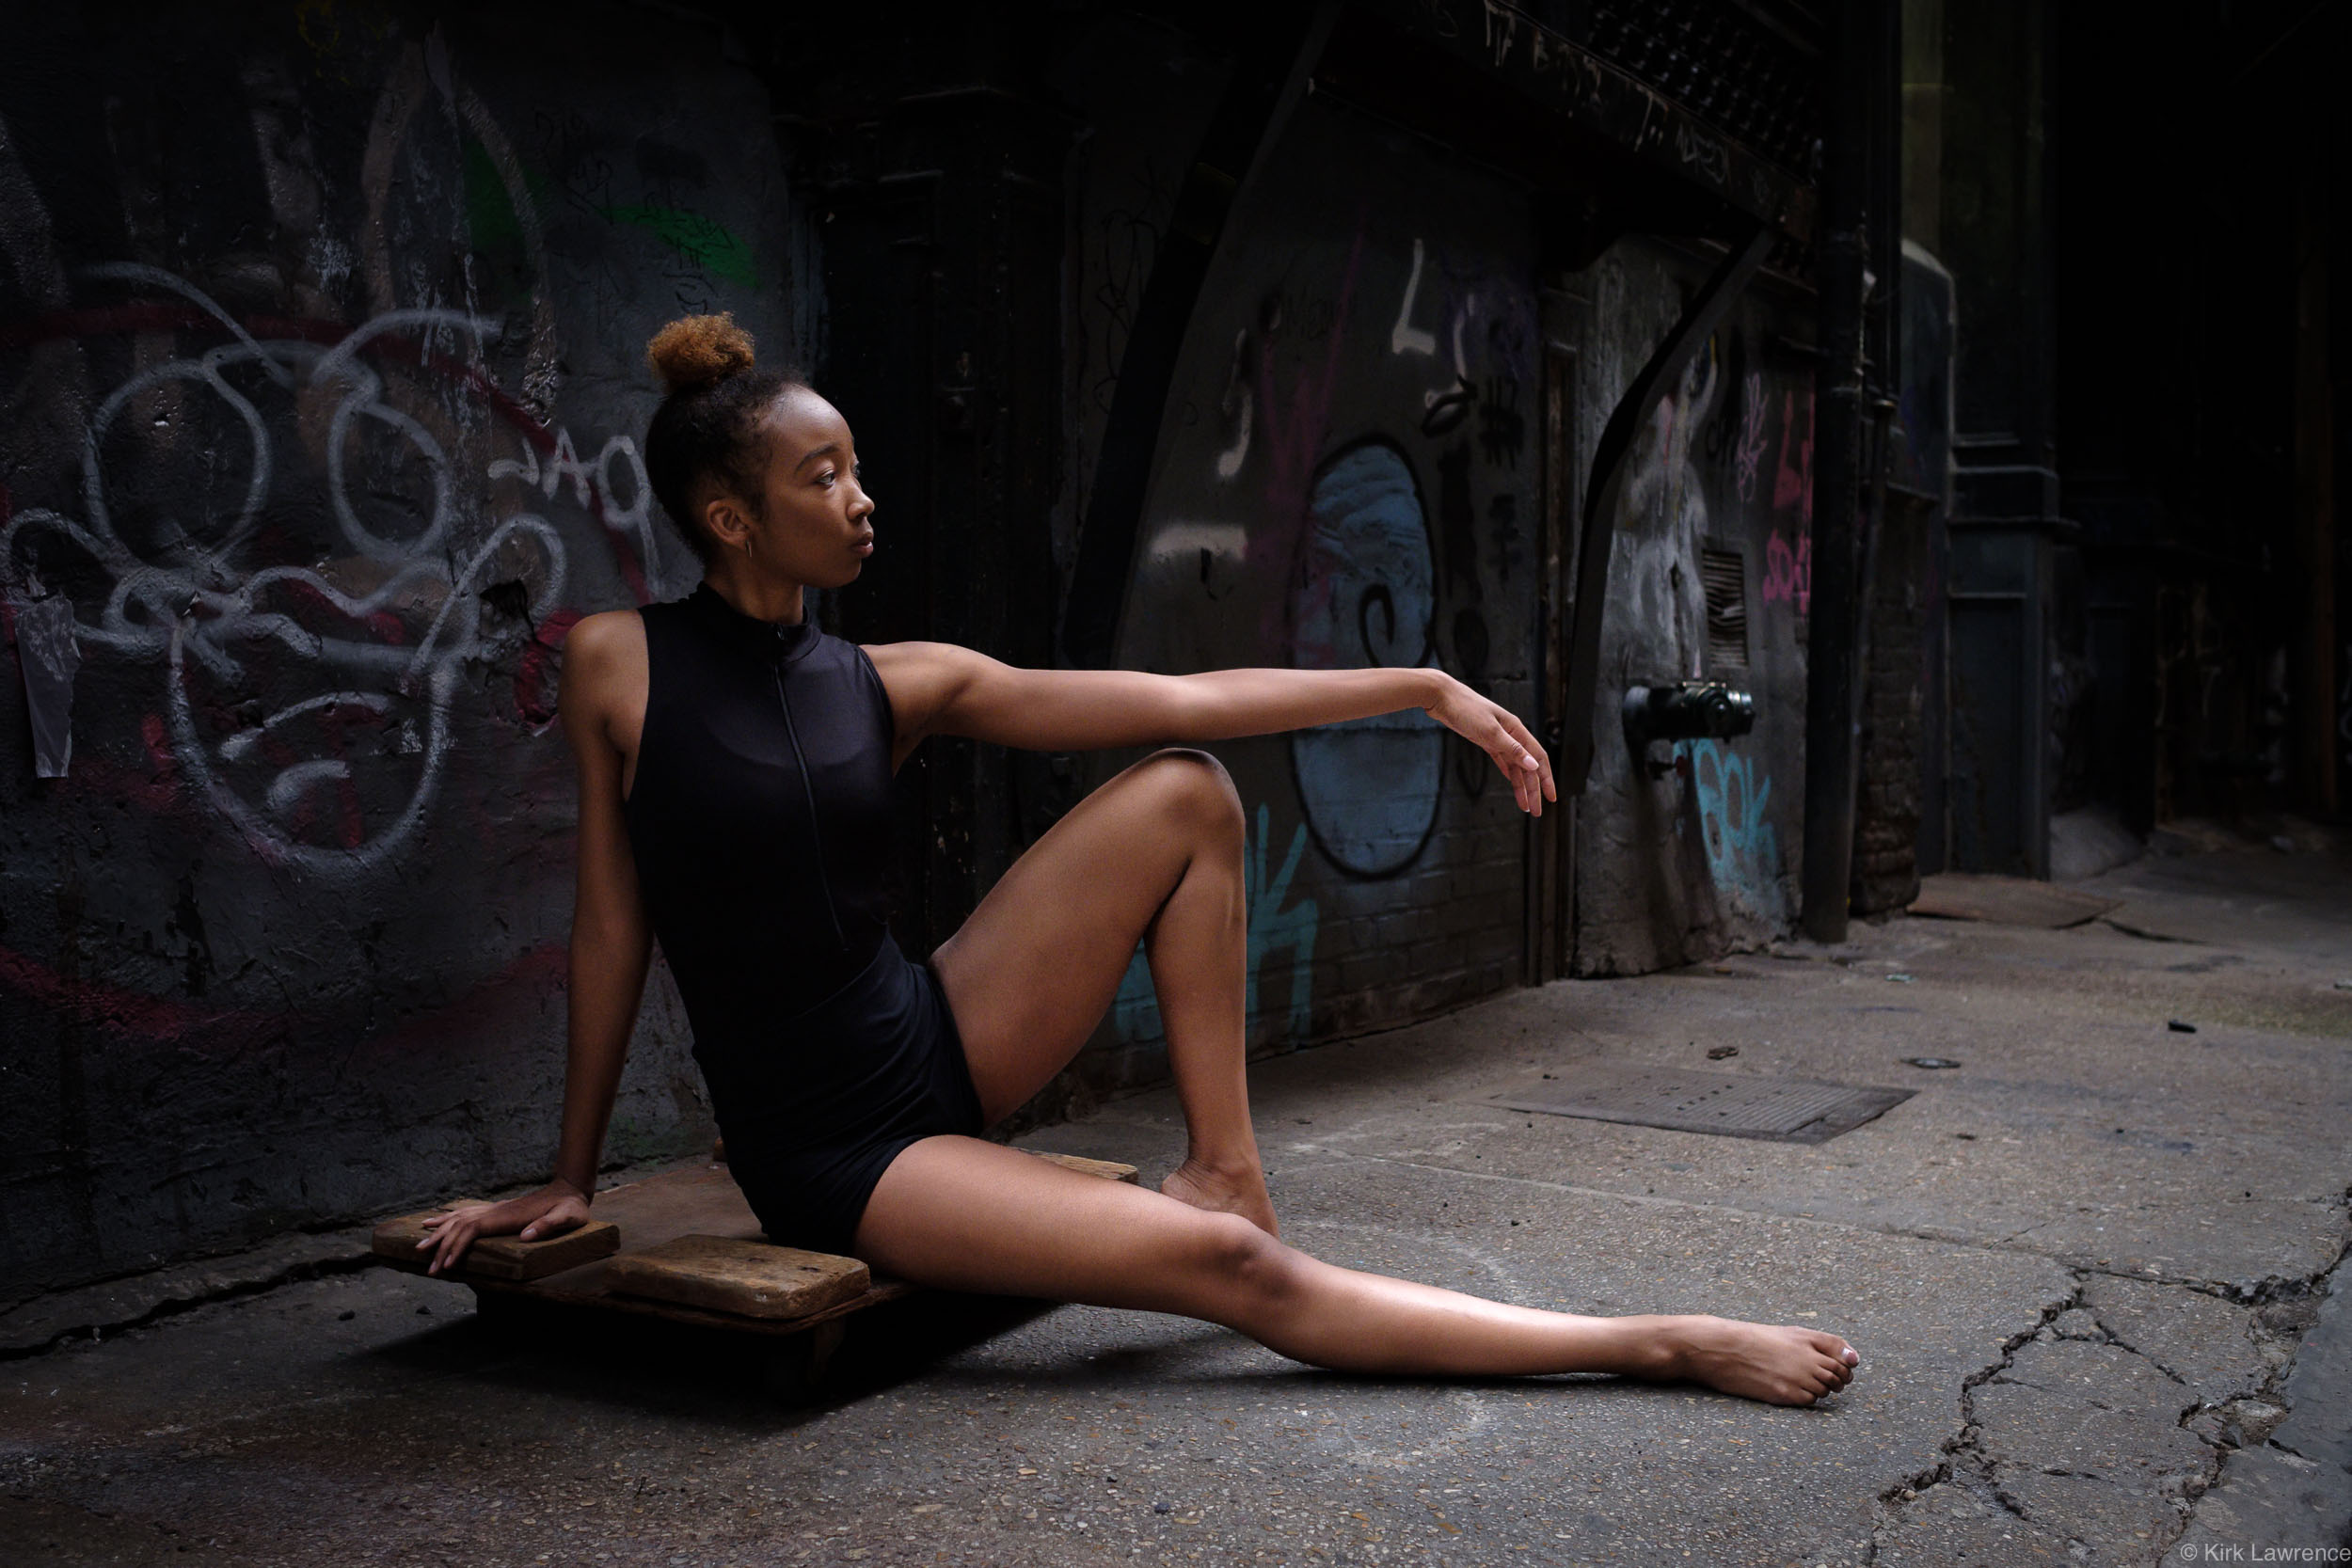 dancer_New_York_City_alley.jpg